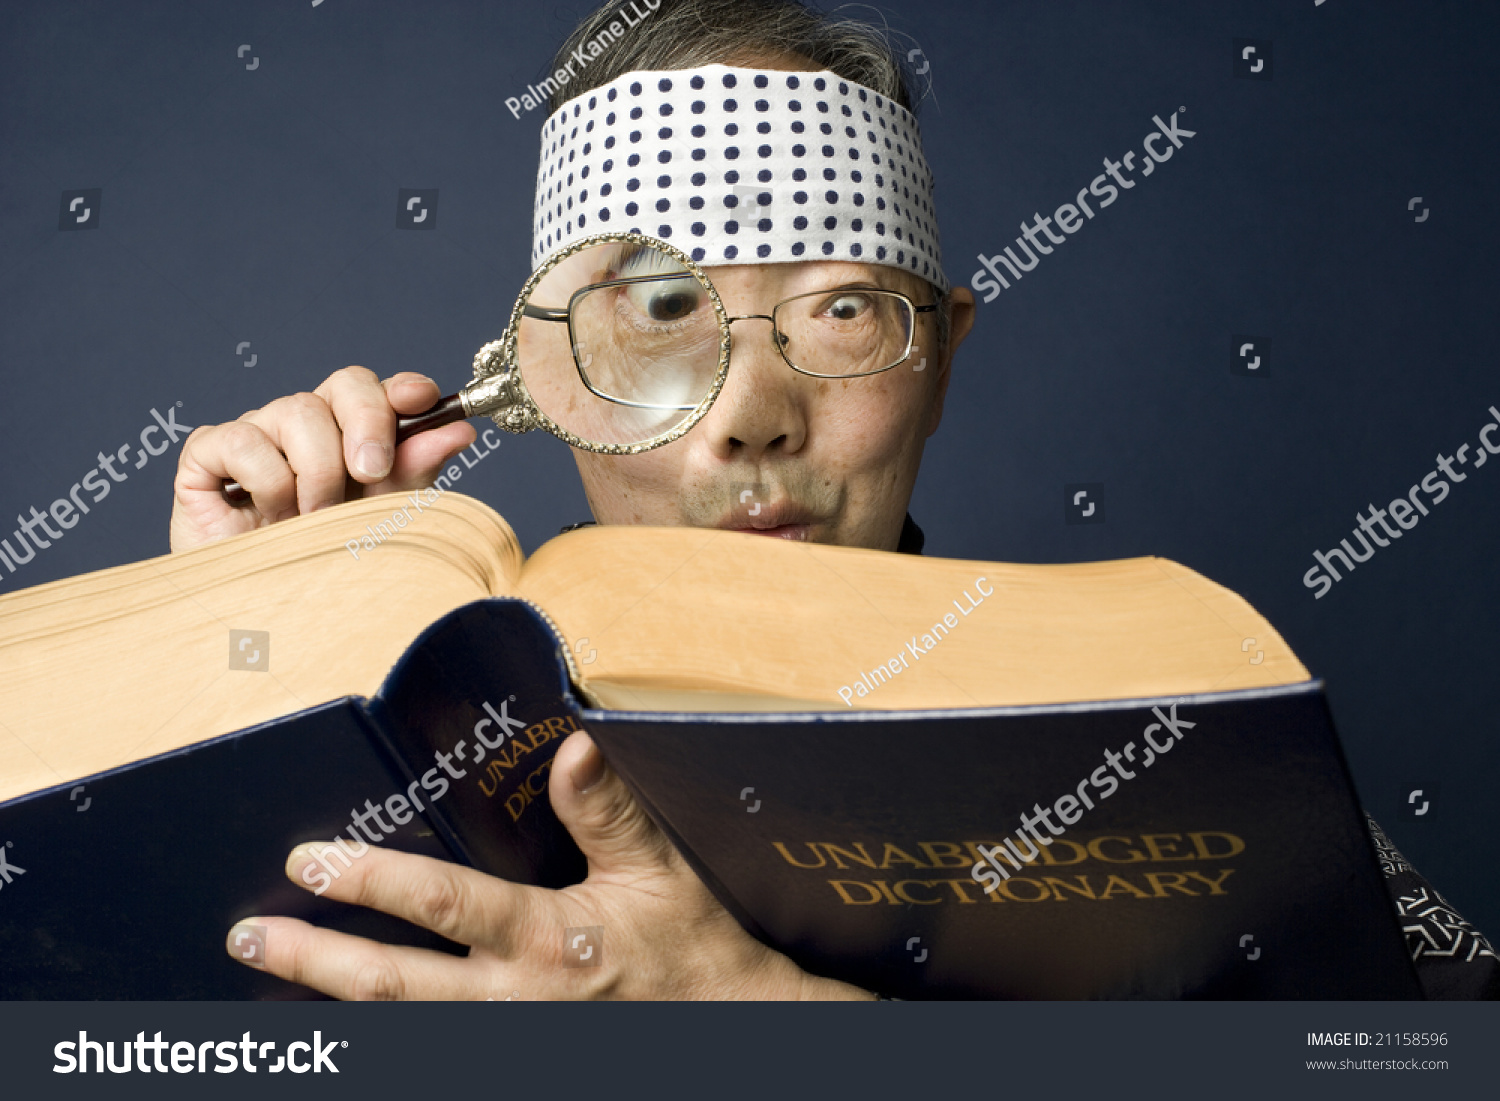 how to read a dictionary